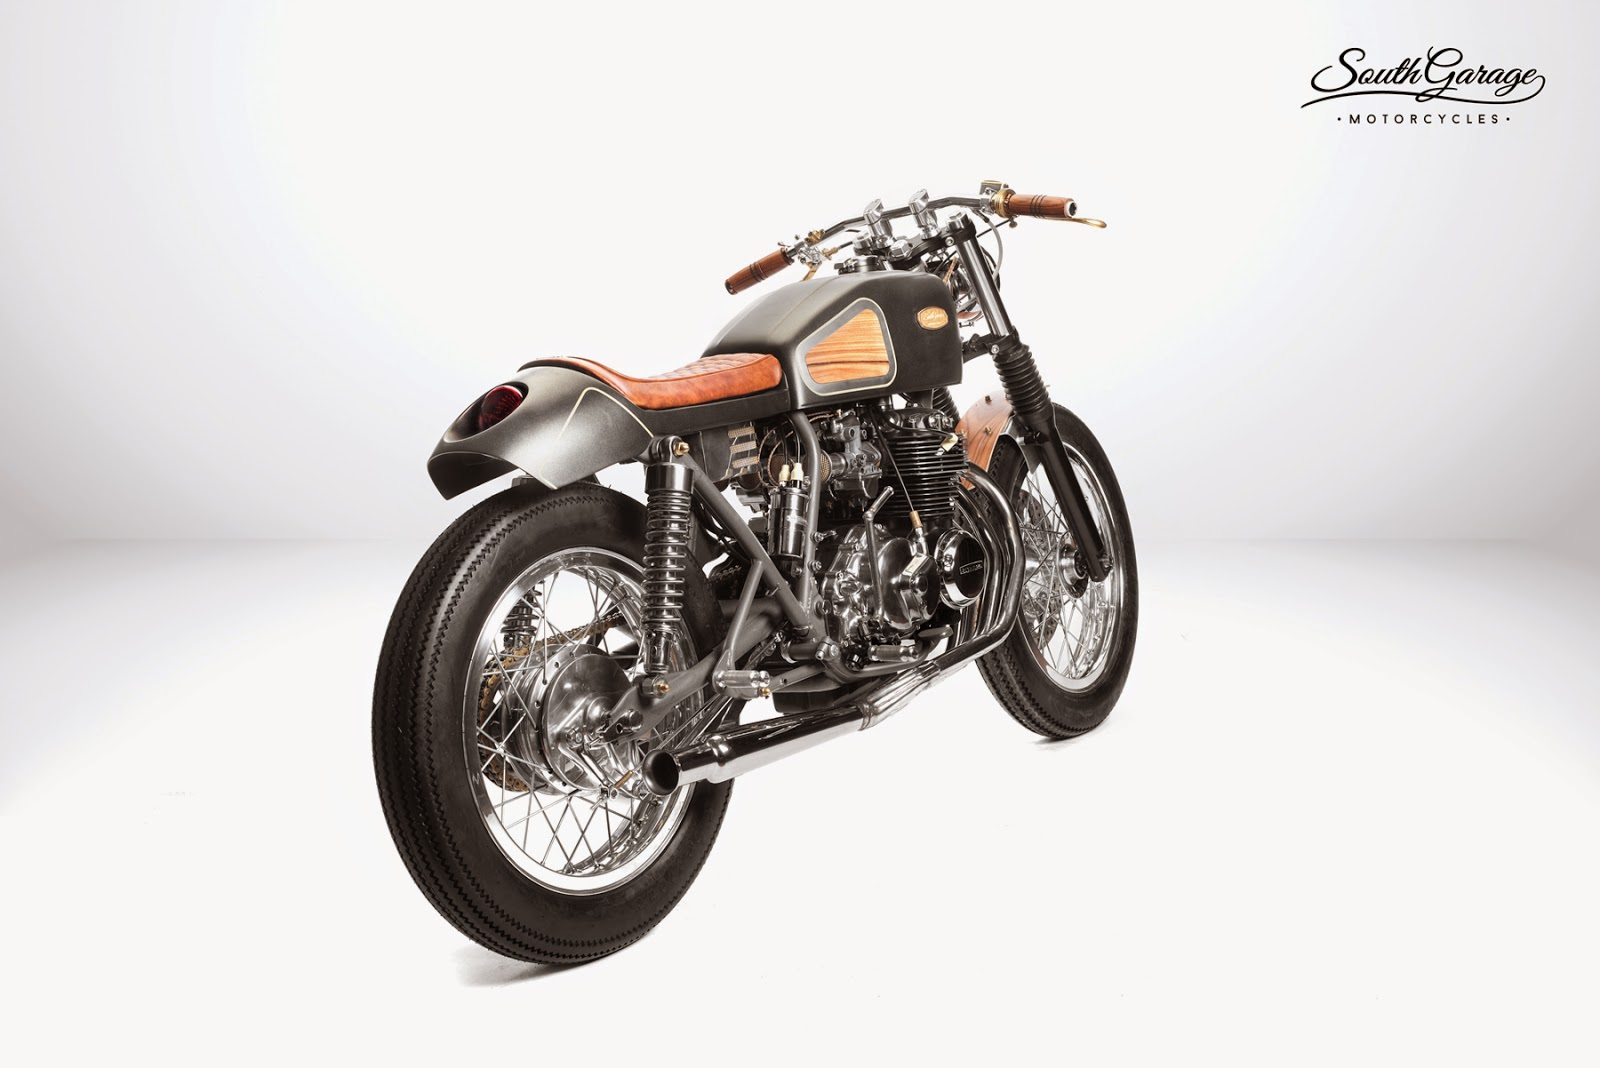 racing caf honda cb hyle by south garage motorcycles. Black Bedroom Furniture Sets. Home Design Ideas